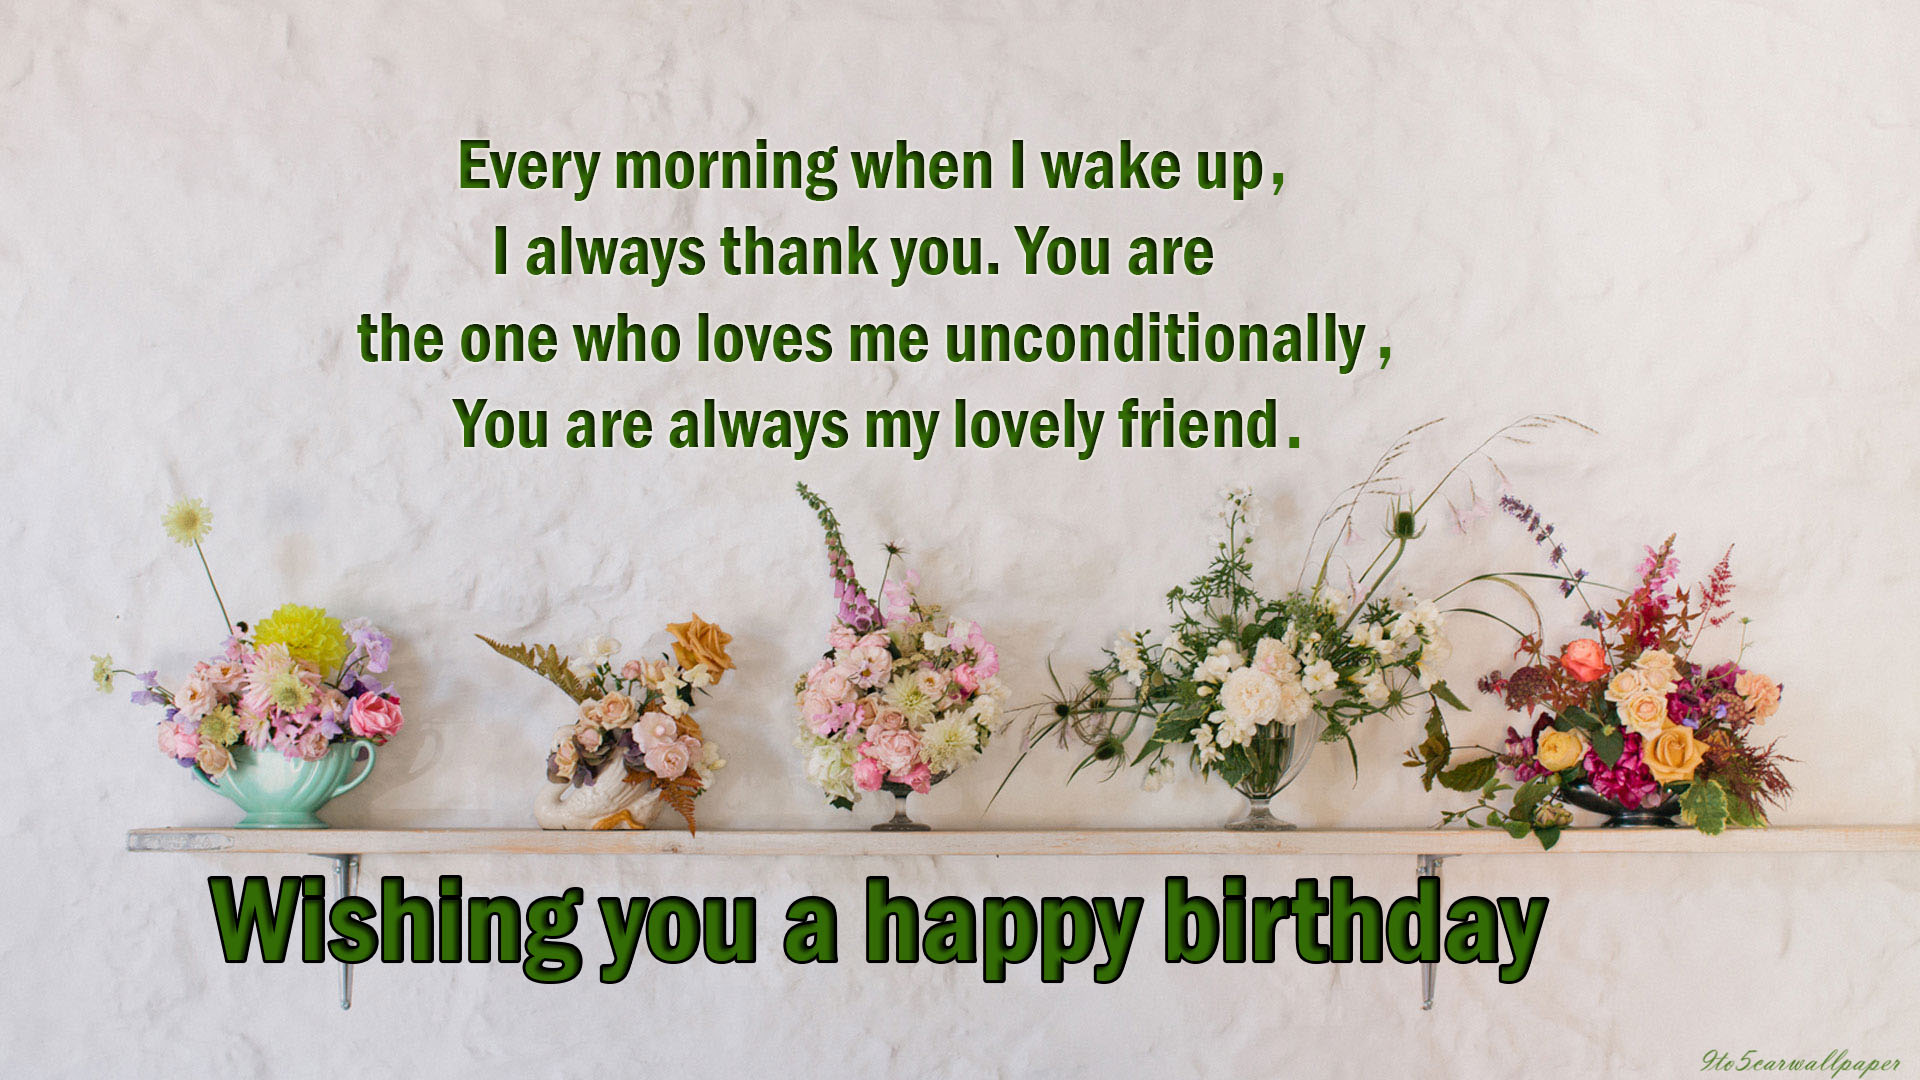 happy-birthday-wishes-cards-quotes-wallpapers-2018